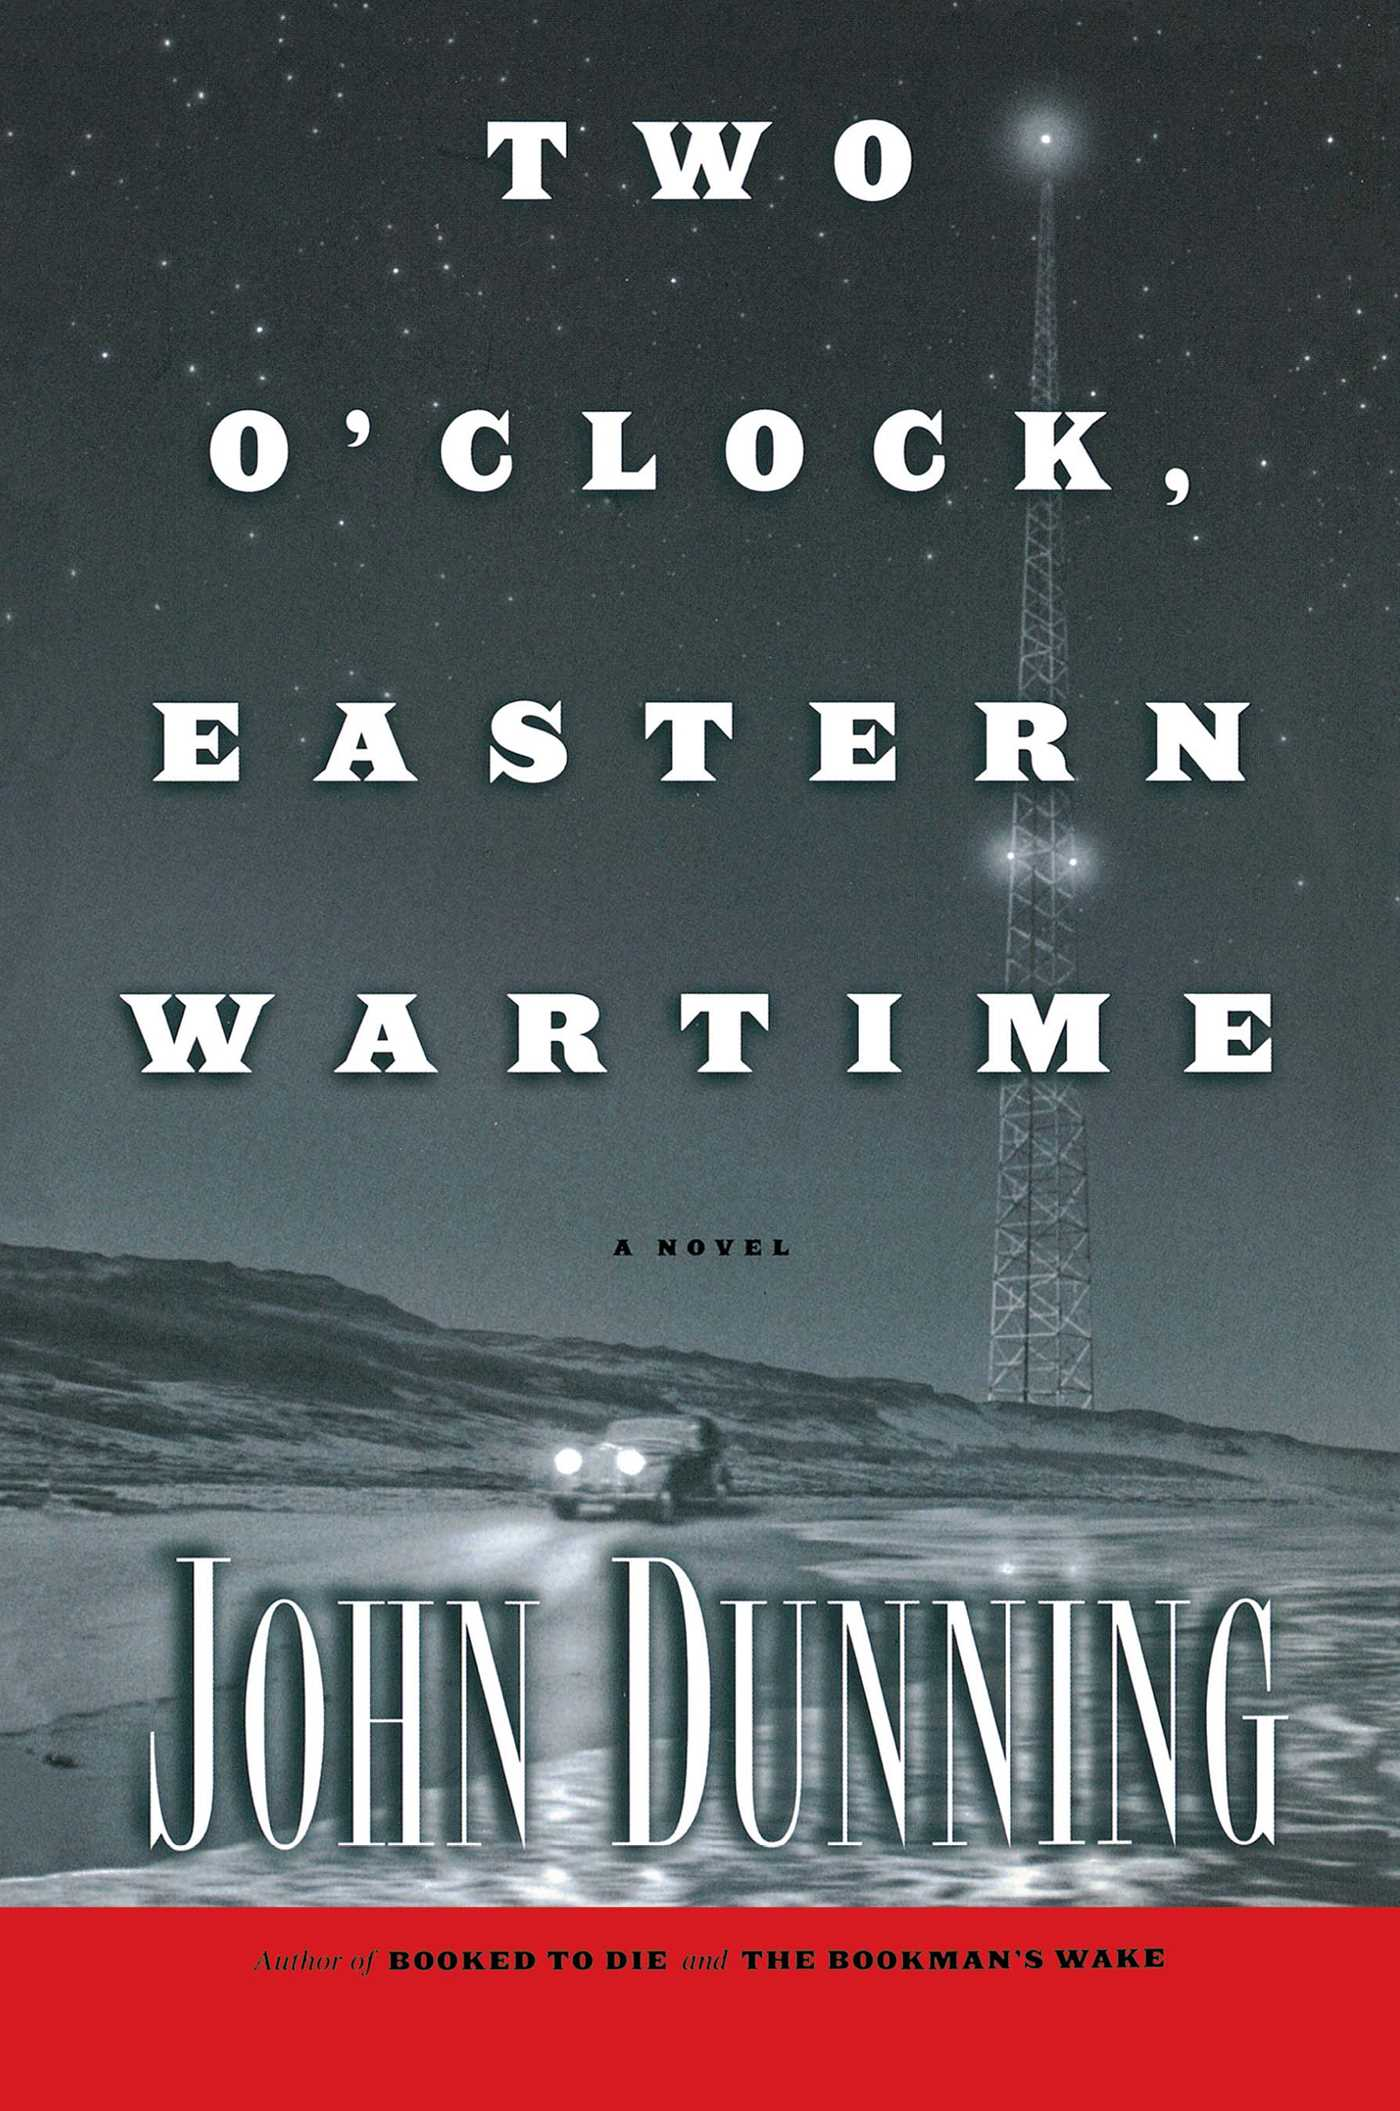 Two oclock eastern wartime 9781439171530 hr